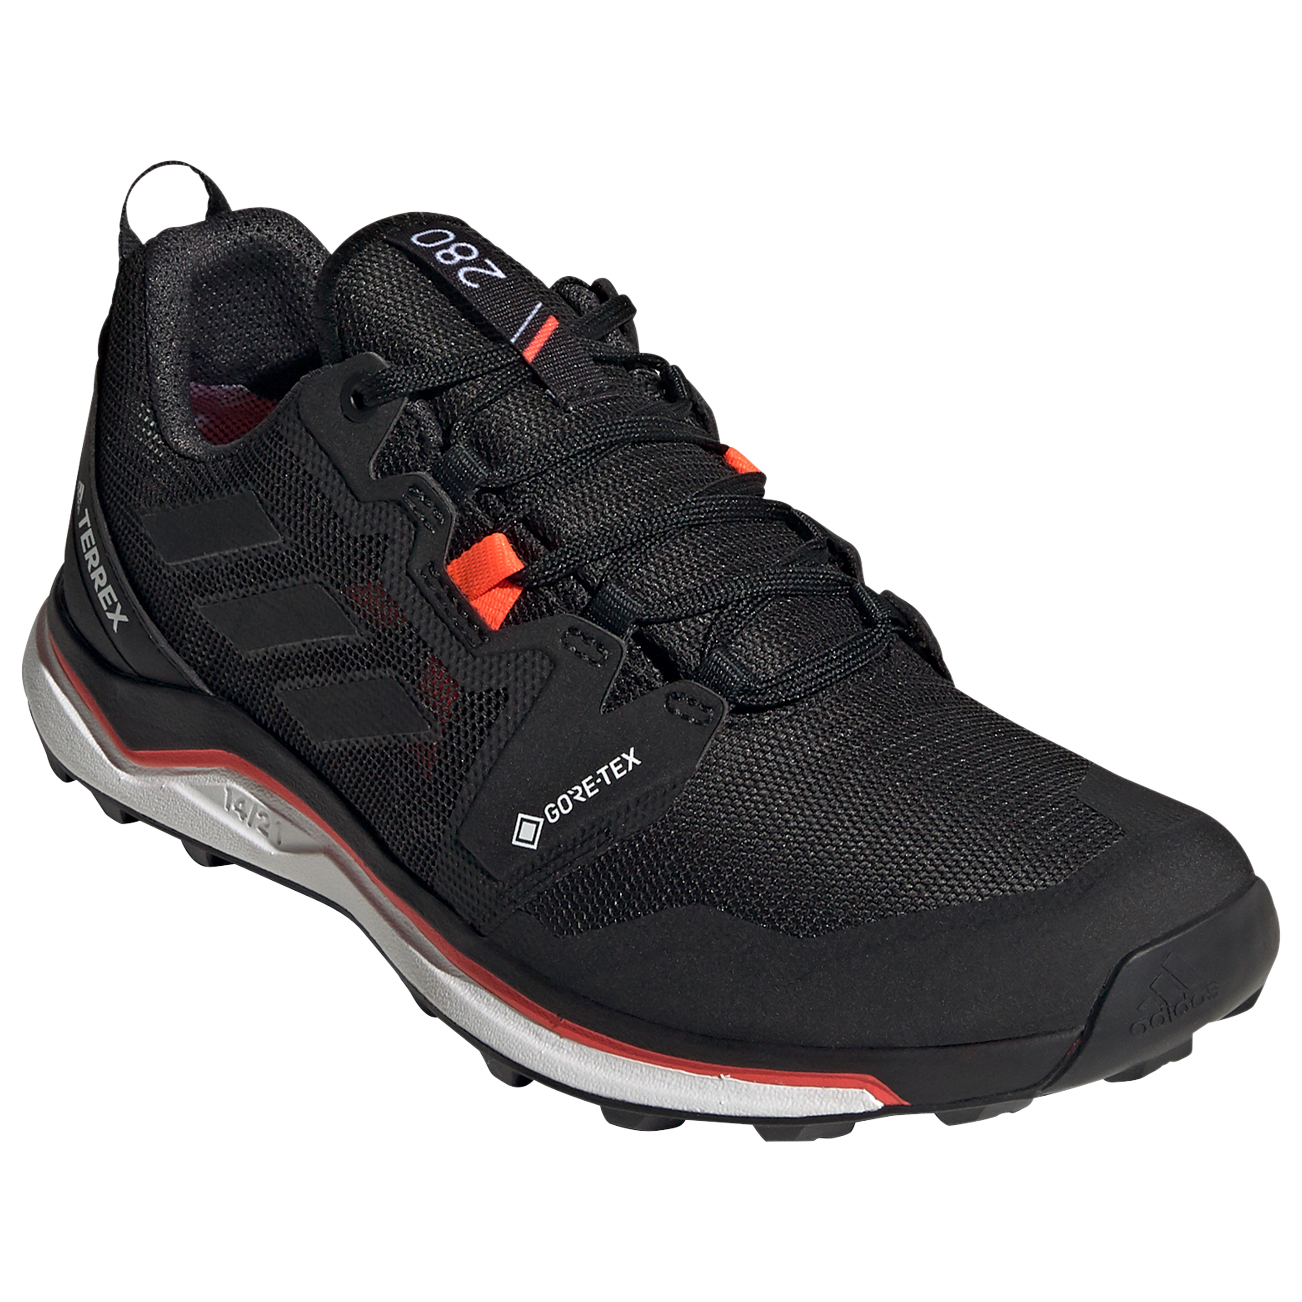 adidas - Women's Terrex Agravic GTX - Trail running shoes - Core Black / Cry White / Solar Red | 3,5 (UK)